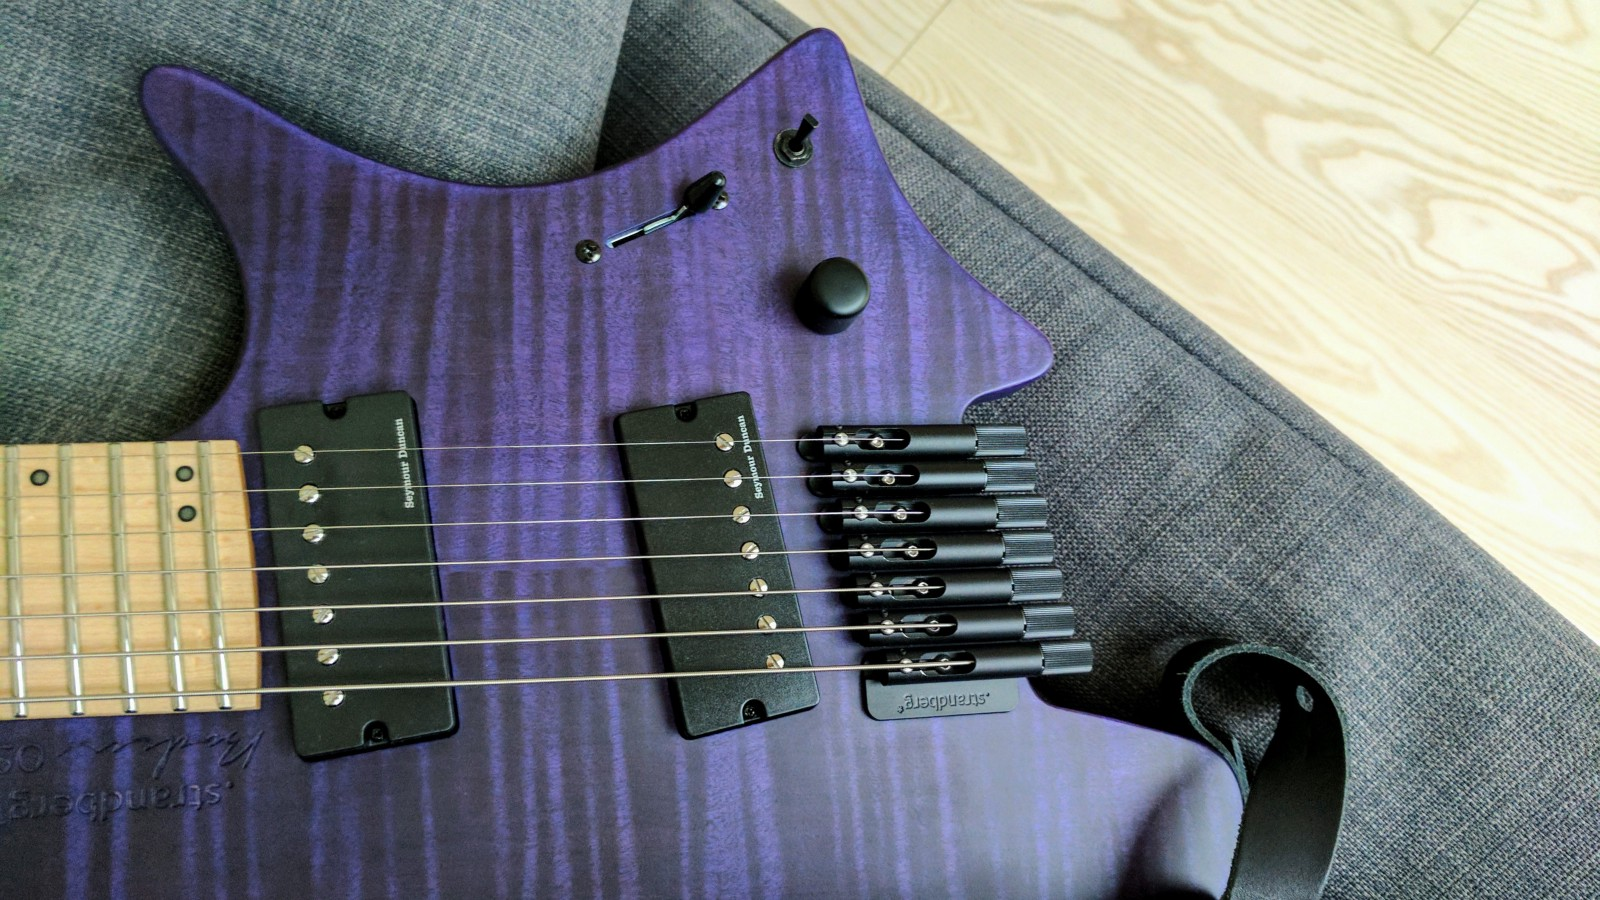 Strandberg Boden Os7 My Perfect Guitar Denis Rechkunov Medium 3 Way Switch Wiring Diagram Blade Sentient And Nazgul Pickups Volume Knob Coil Split